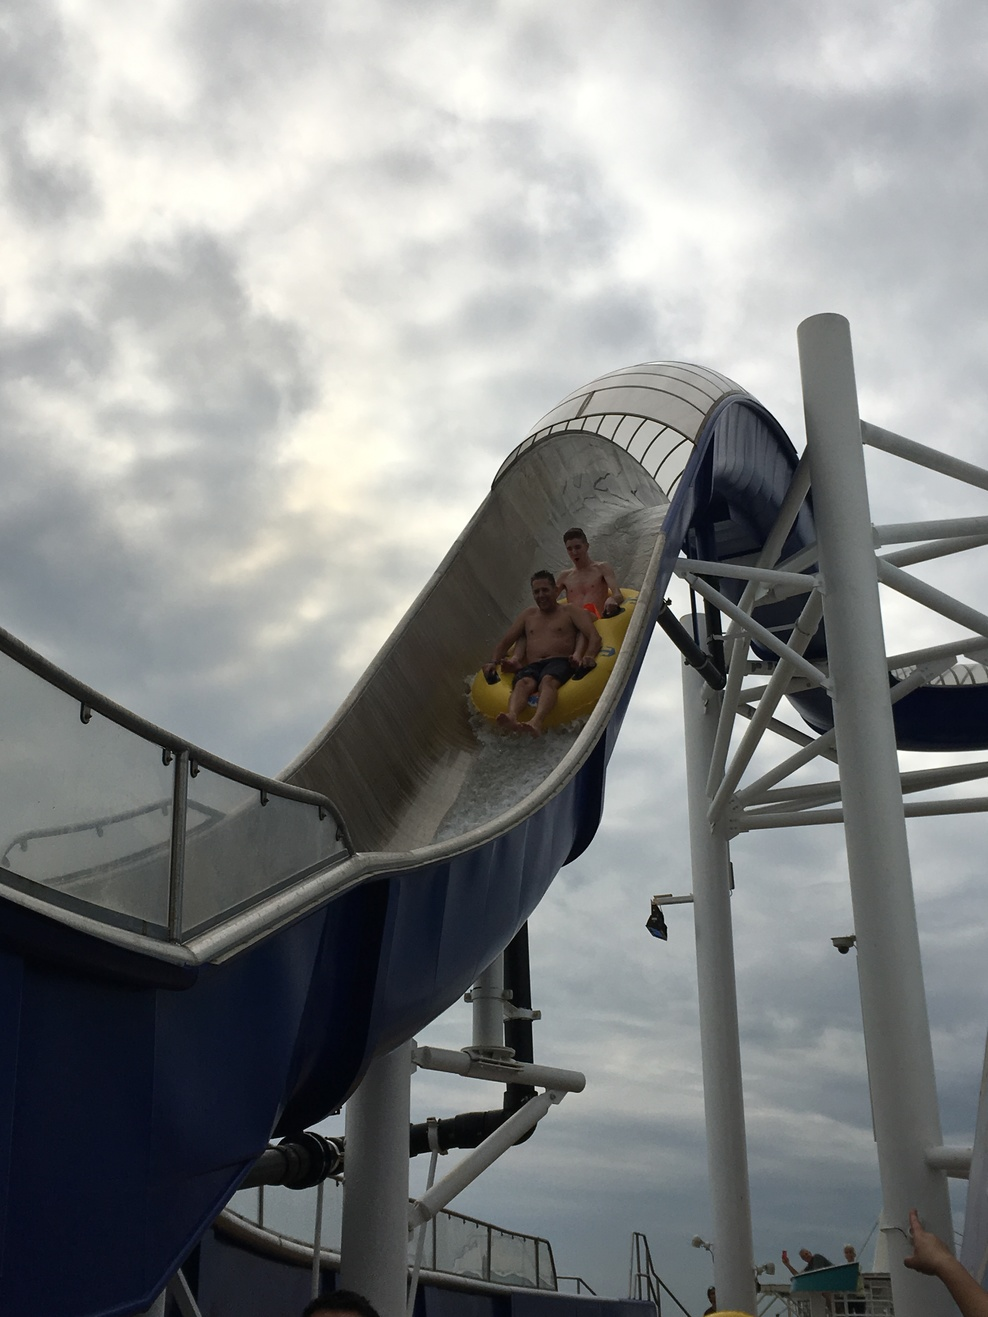 The double tube water slide